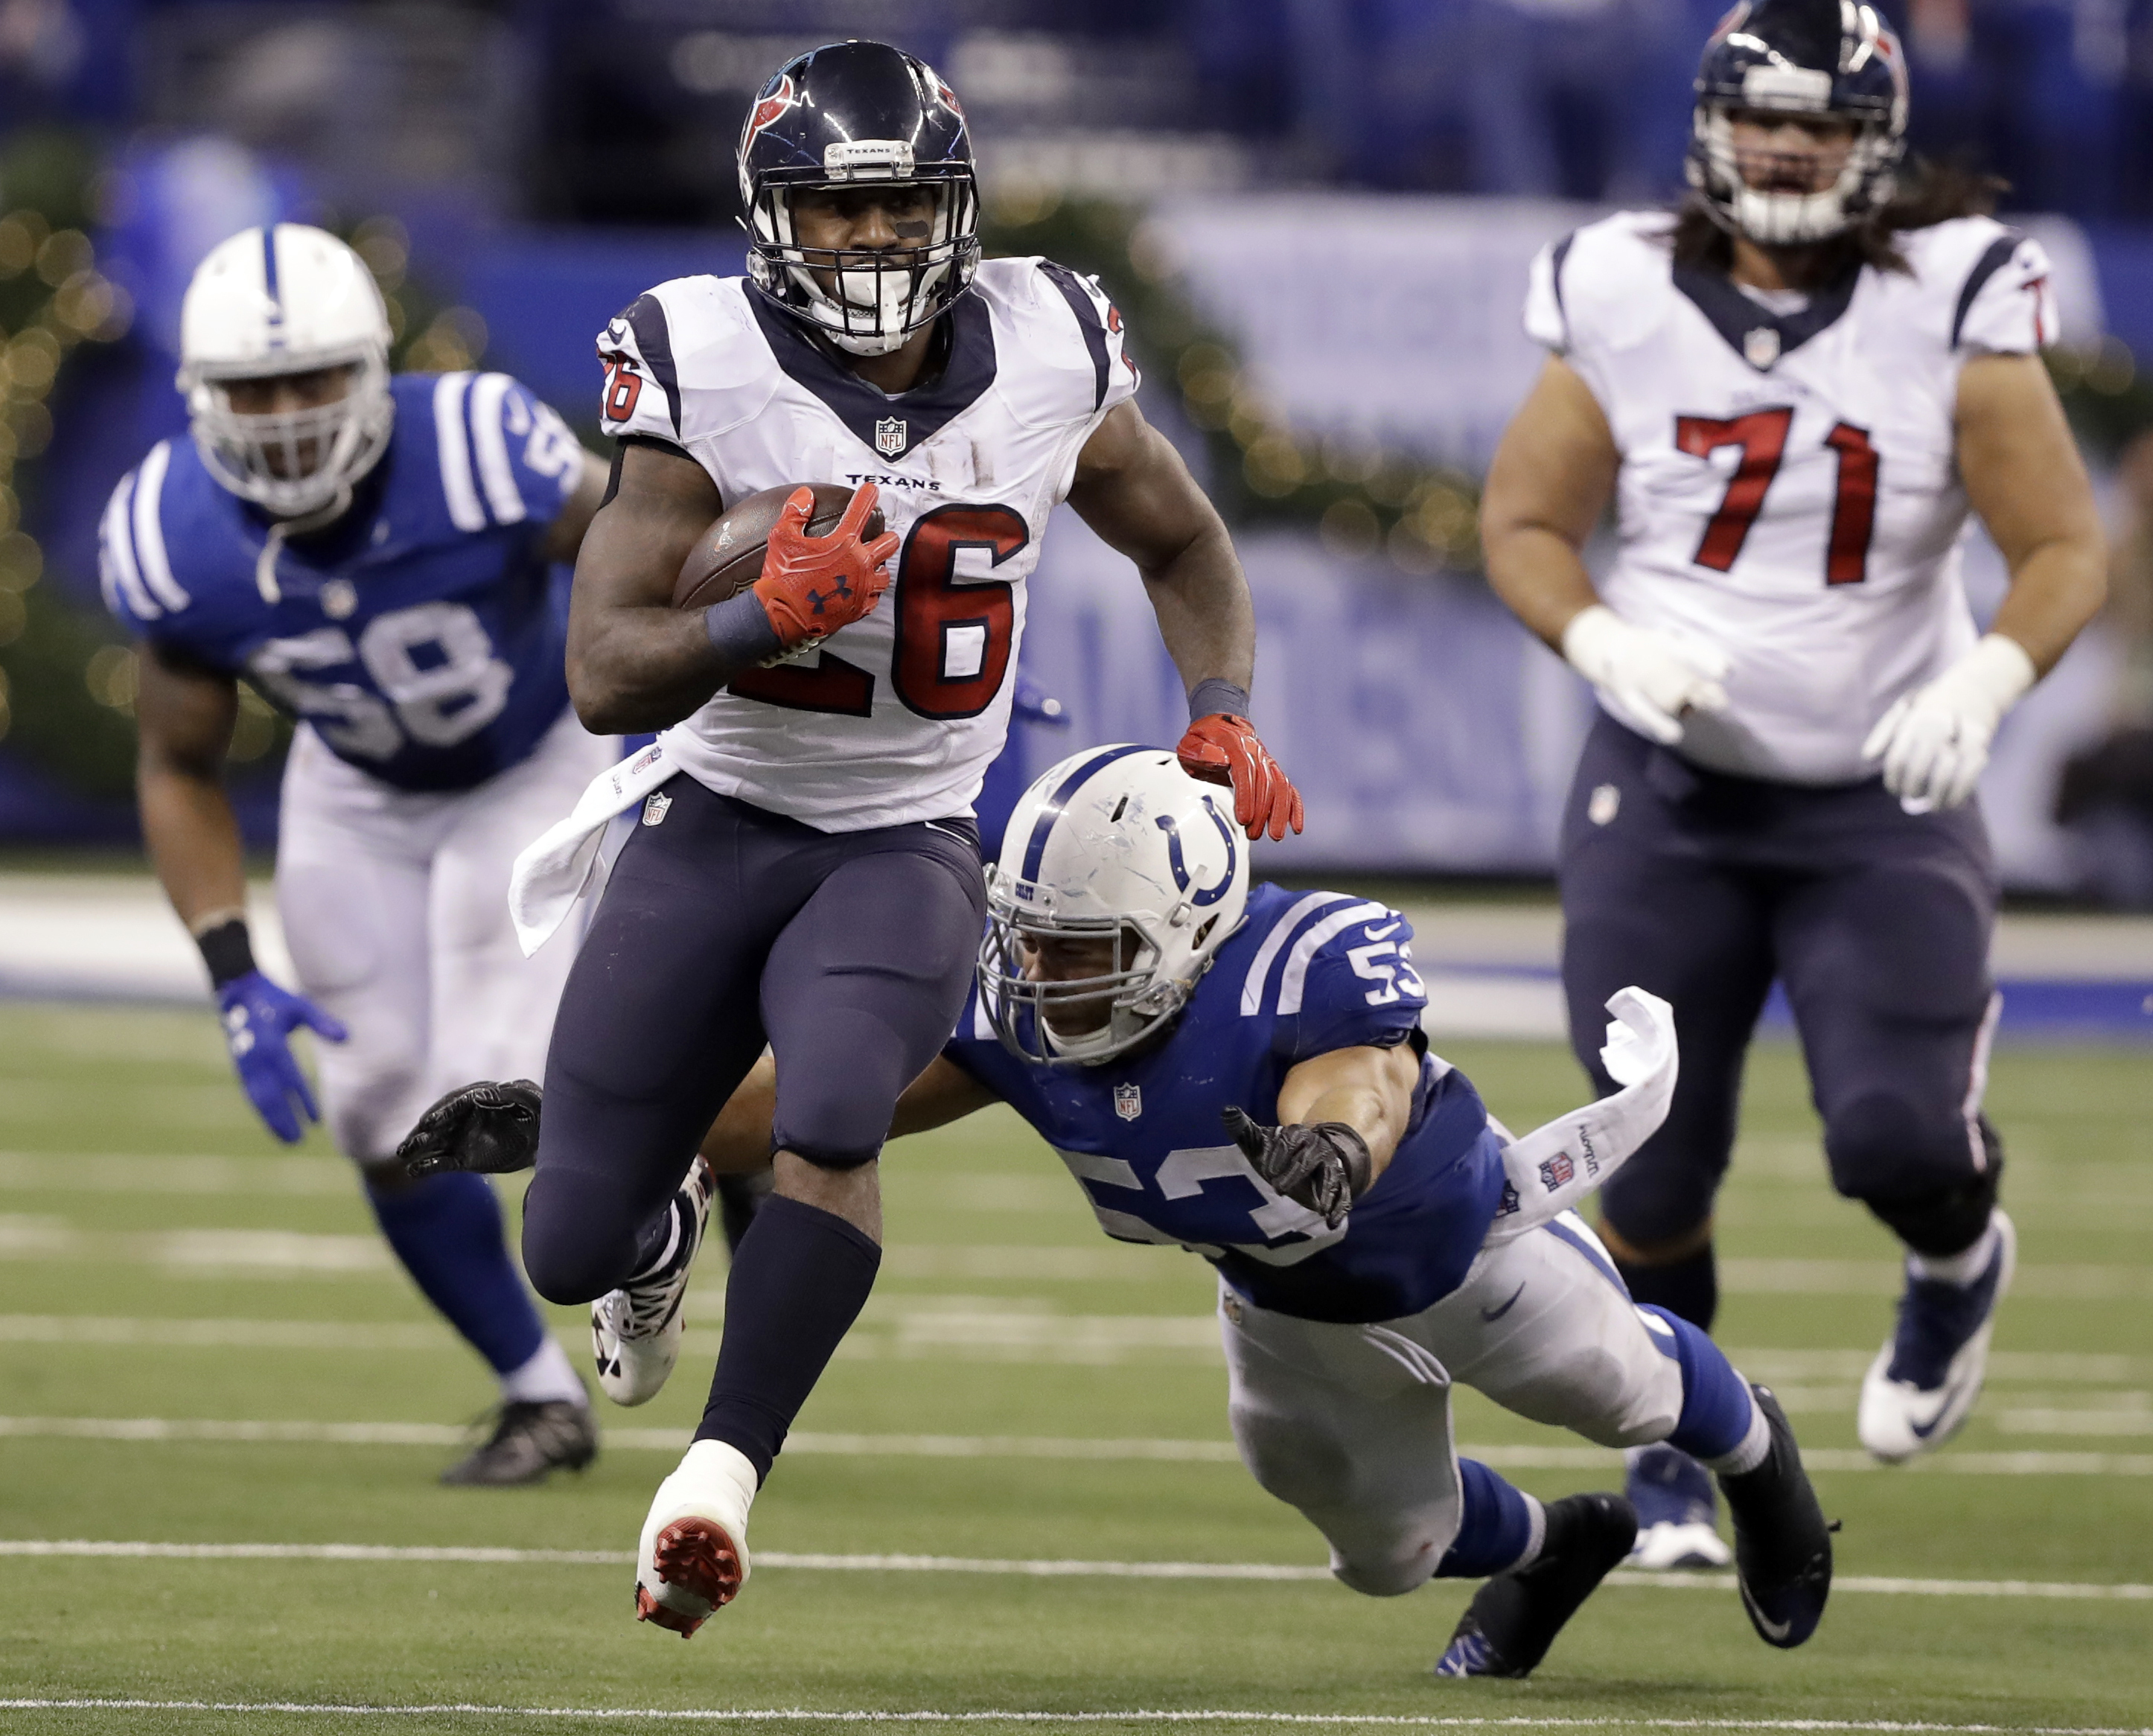 Houston Texans running back Lamar Miller (26) runs with the ball as Indianapolis Colts linebacker Edwin Jackson (53) and linebacker Trent Cole defend during the second half of an NFL football game, Sunday, Dec. 11, 2016, in Indianapolis. (AP Photo/Darron